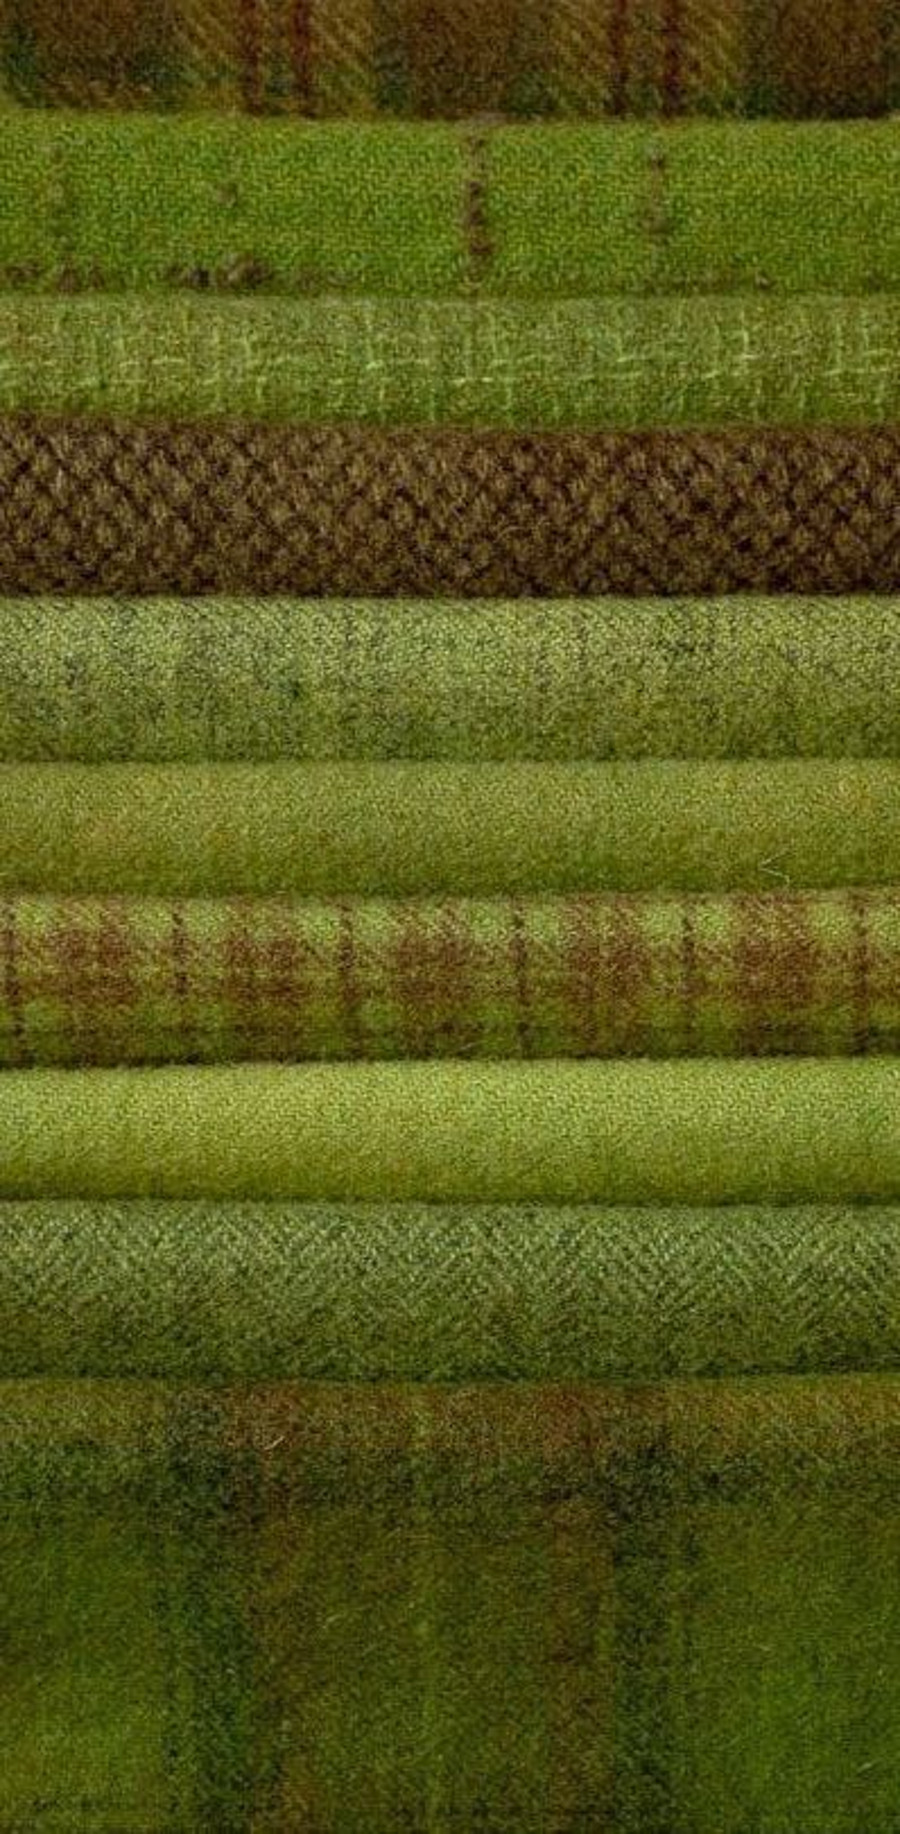 fall-winter trends 2018 - 10 Upholstery Fabrics To Decorate Any Space fall-winter trends Fall-Winter Trends: 12 Upholstery Fabrics To Decorate Any Space Fall Winter Trends 2018 10 Upholstery Fabrics To Decorate Your Favourite Space 31